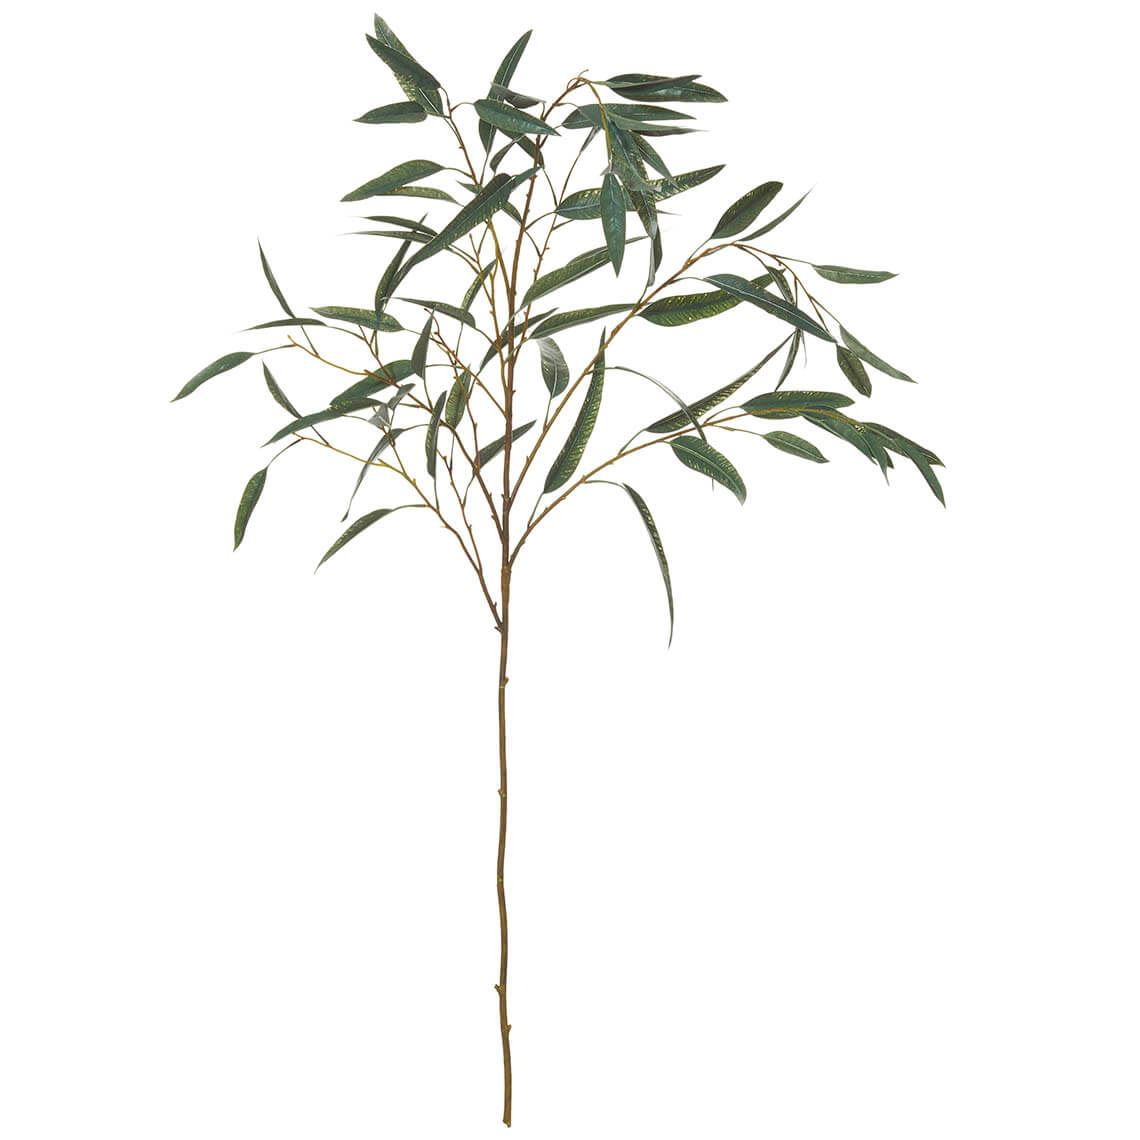 Eucalyptus Artificial Spray Size W 65cm x D 30cm x H 140cm in Green Freedom by Freedom, a Plants for sale on Style Sourcebook